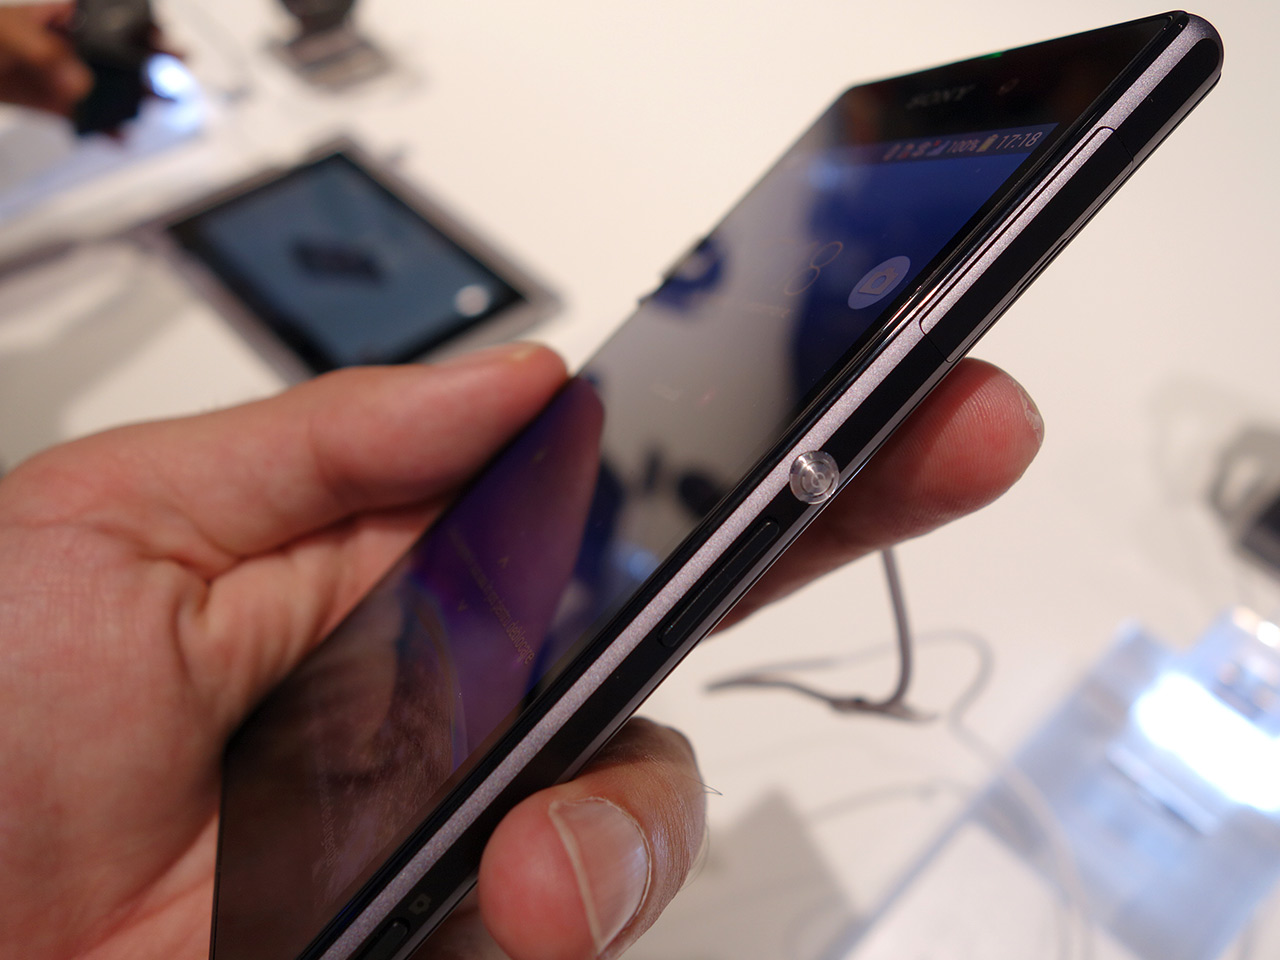 Hands-on with the 20 7MP Sony Xperia Z1: Digital Photography Review